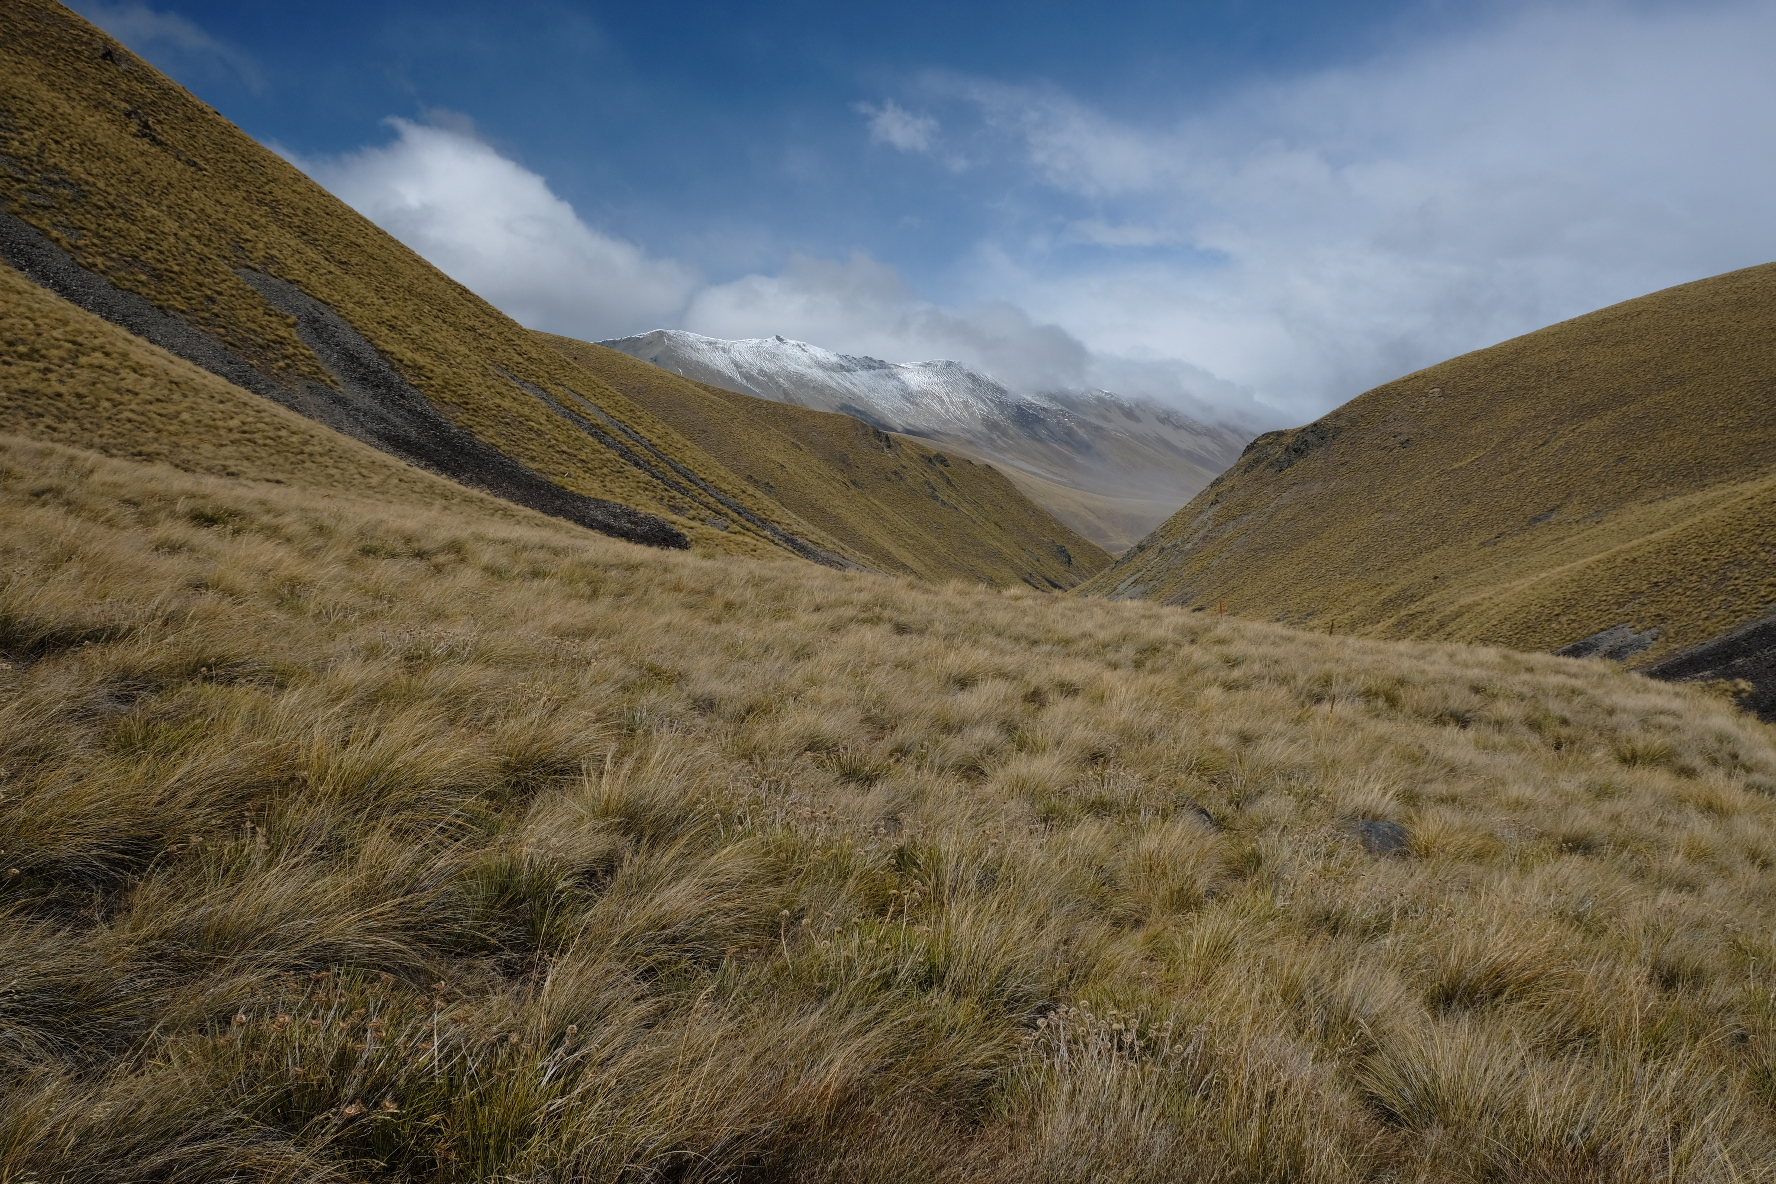 Camp stream bush bashing. According to the Otago Tramping Club it's actually the bush that does the bashing